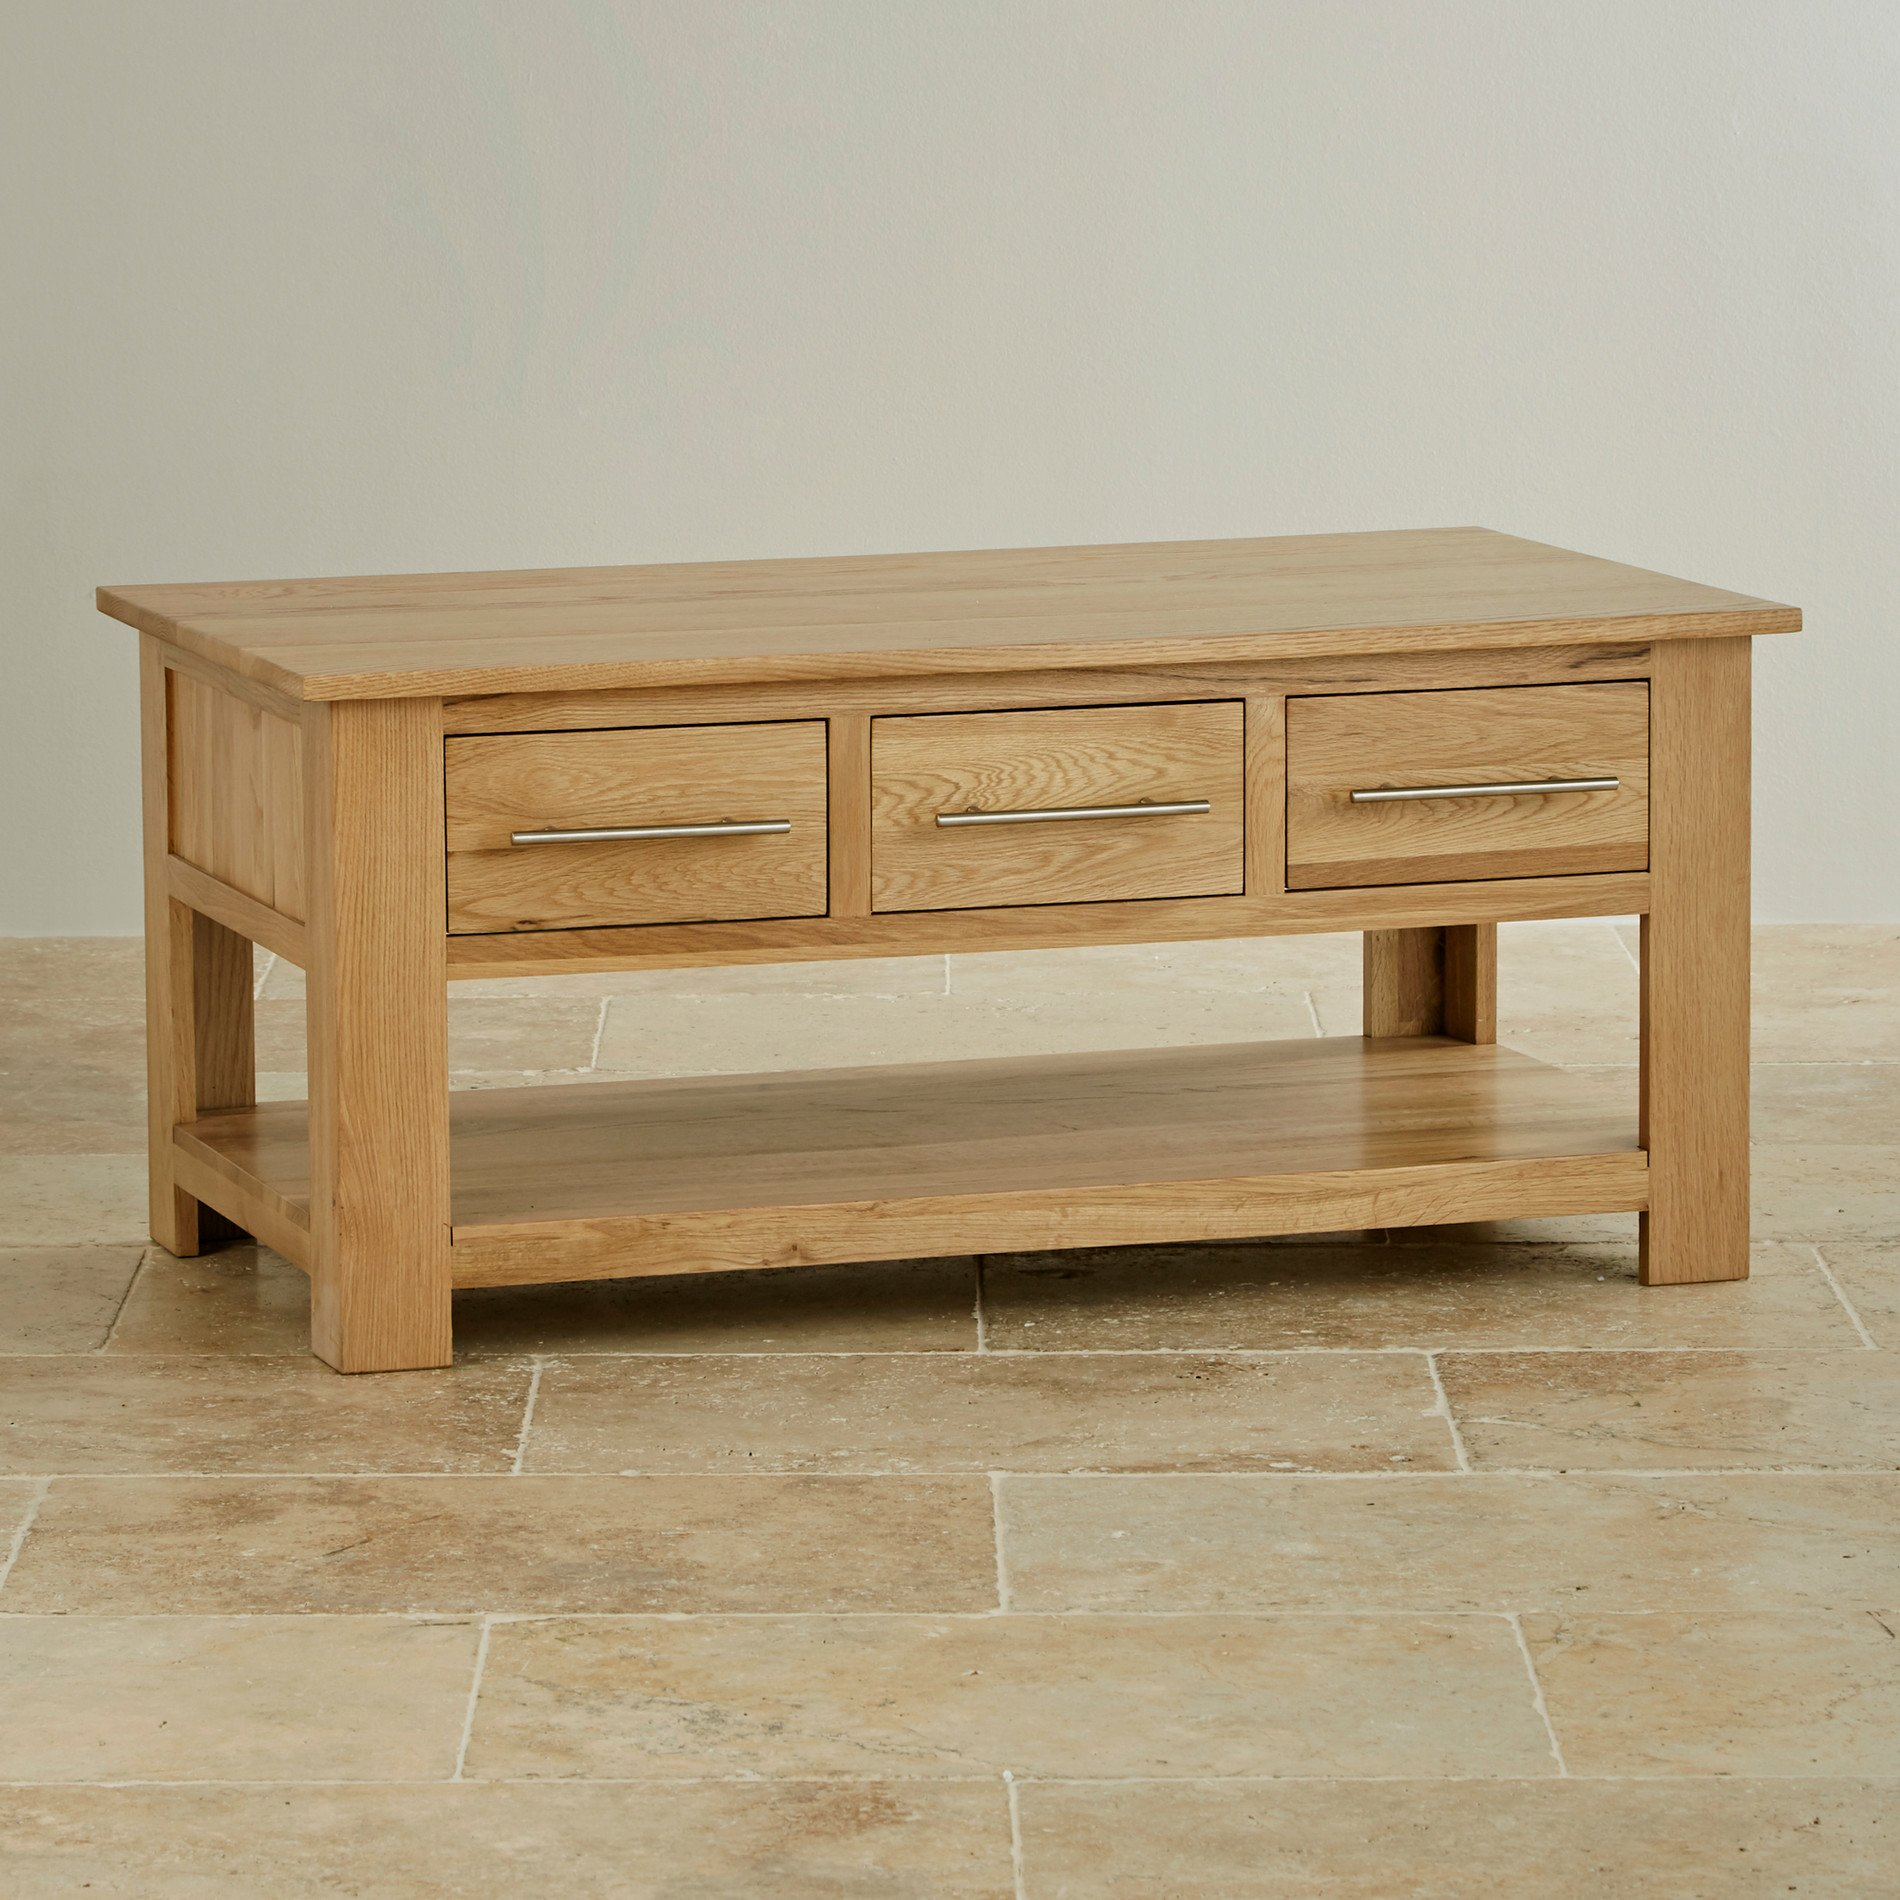 Coffee Table With Drawers: Rivermead 6 Drawer Coffee Table In Natural Solid Oak